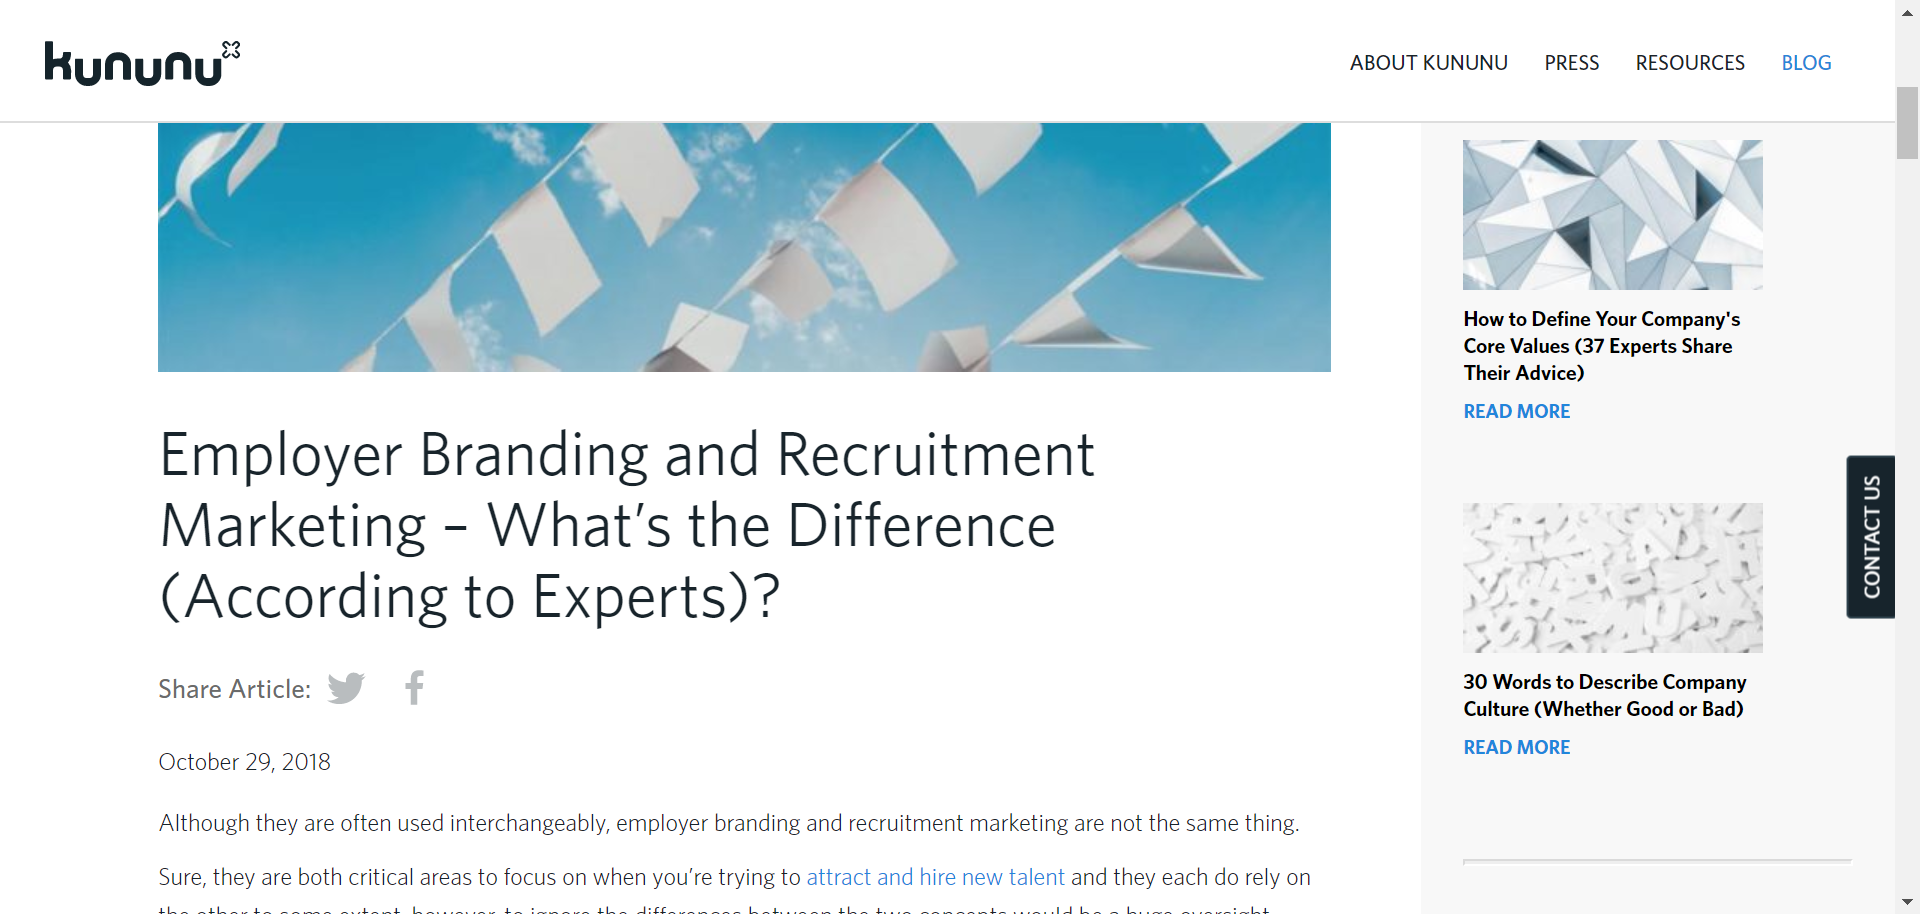 Susan comments on employer branding and recruitment marketing